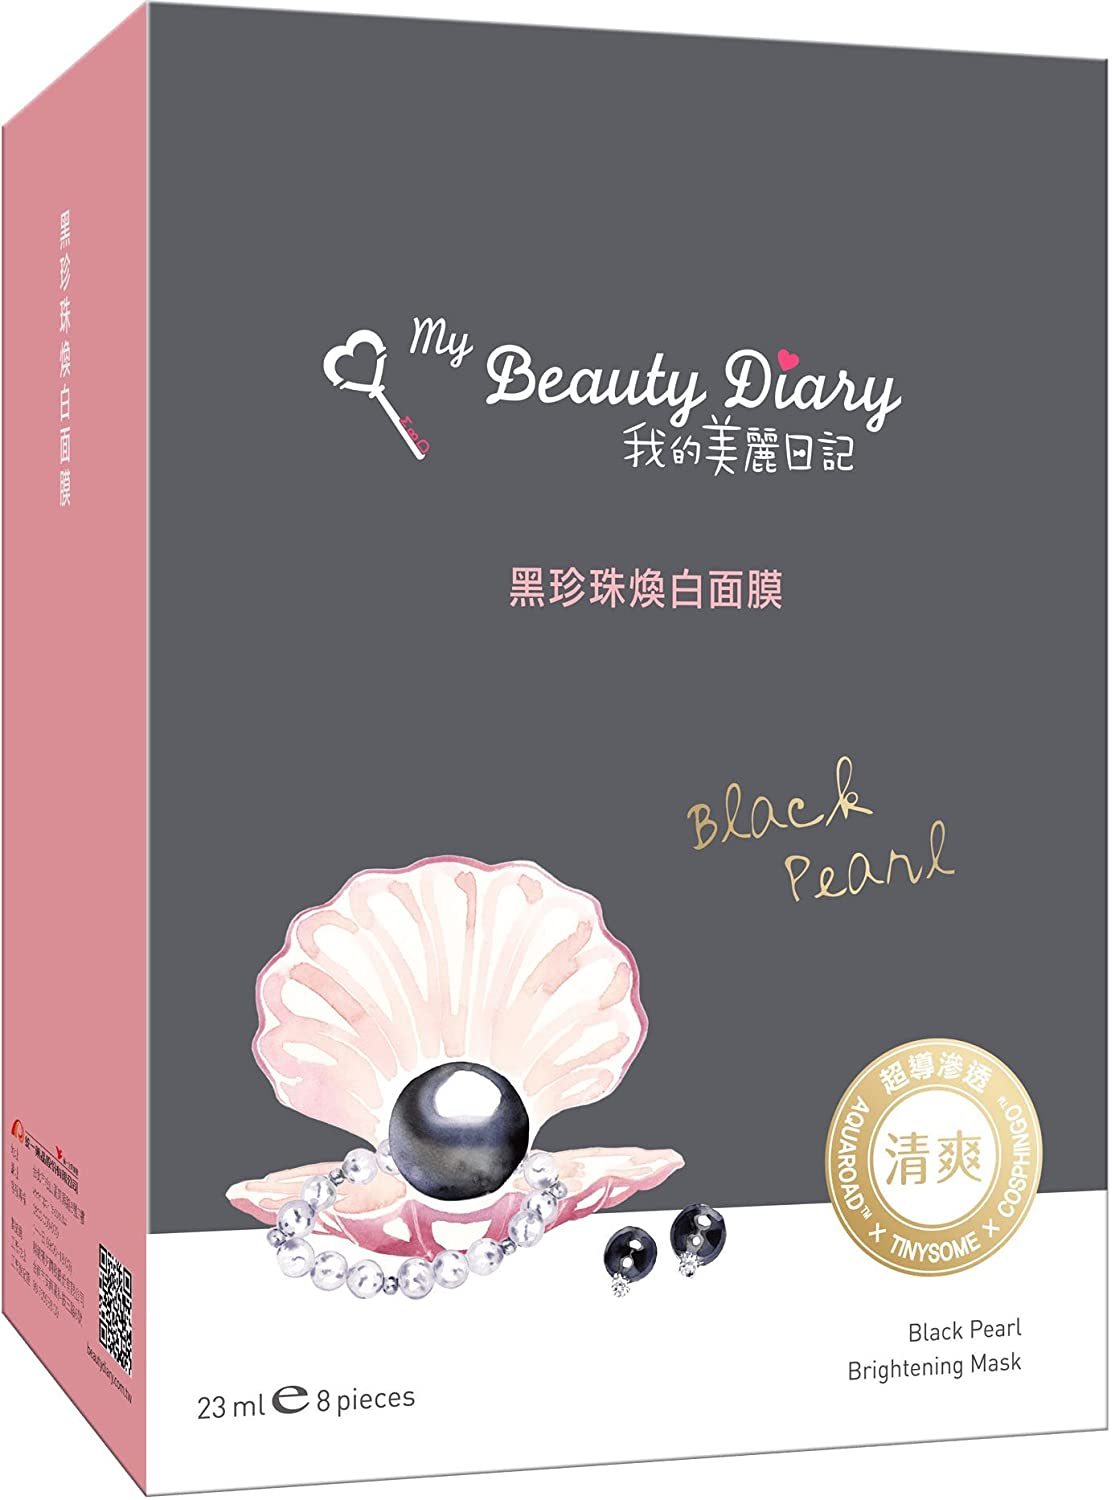 MY BEAUTY DIARY-Black Pearl Brightening Facial Mask